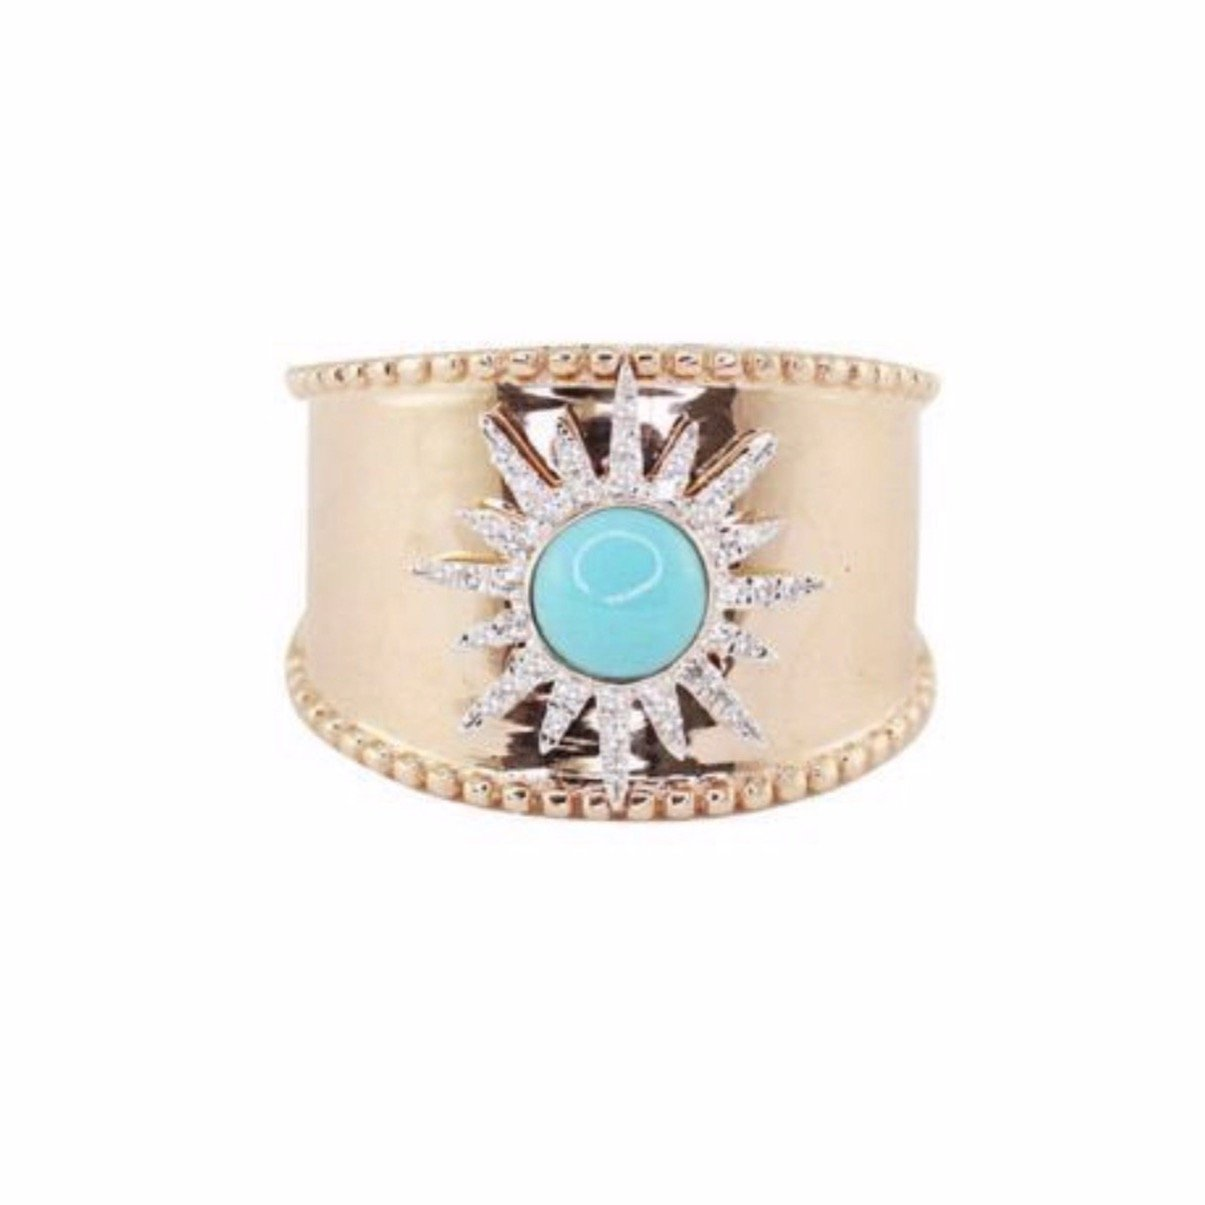 Large gold ring with crystal starburst around a blue stone.